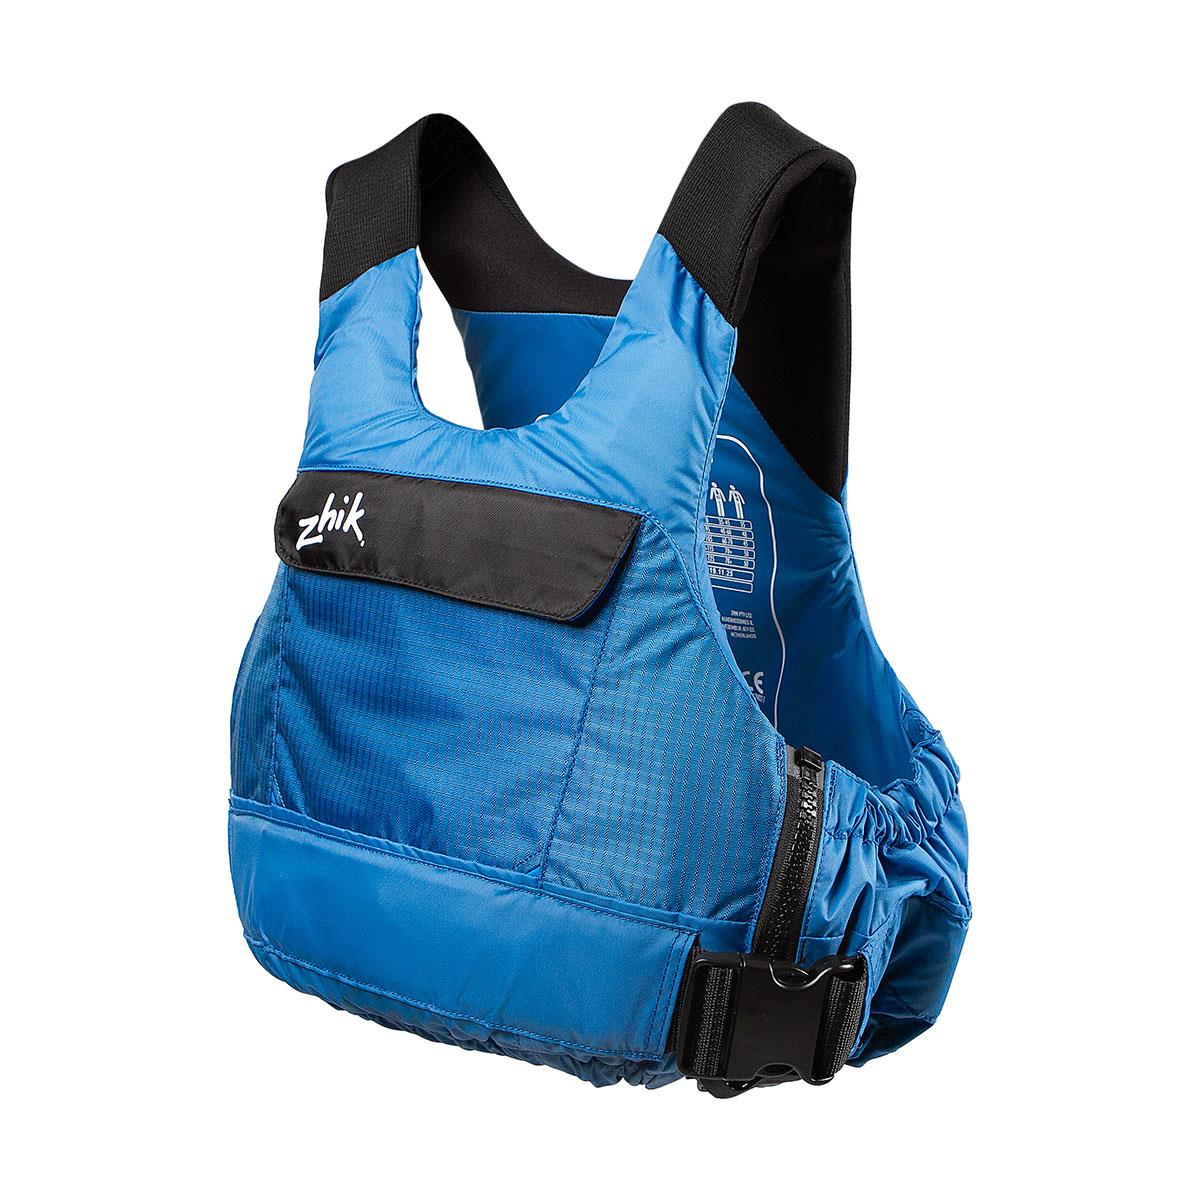 Zhik P3 PFD Buoyancy Aid - Blue